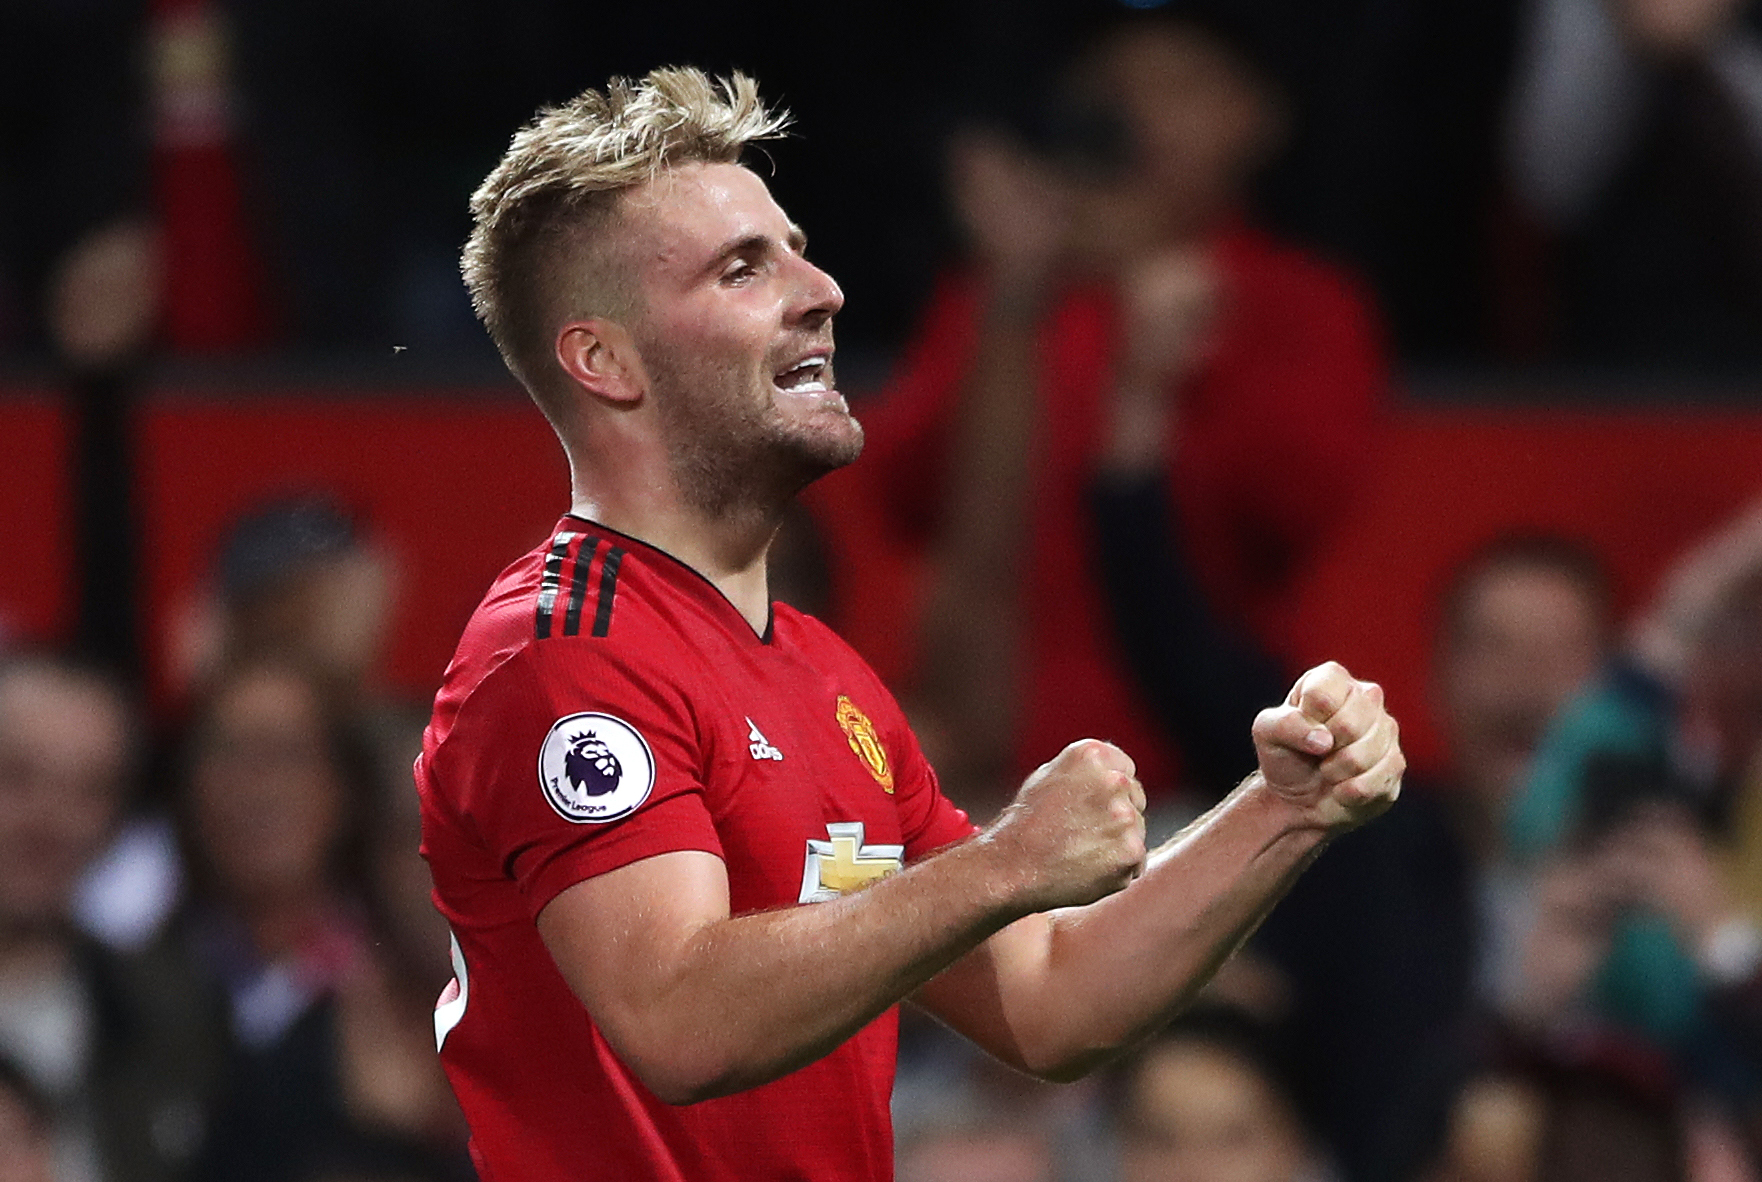 Shaw's resurgence includes scoring the winner against Leicester. Image: PA Images